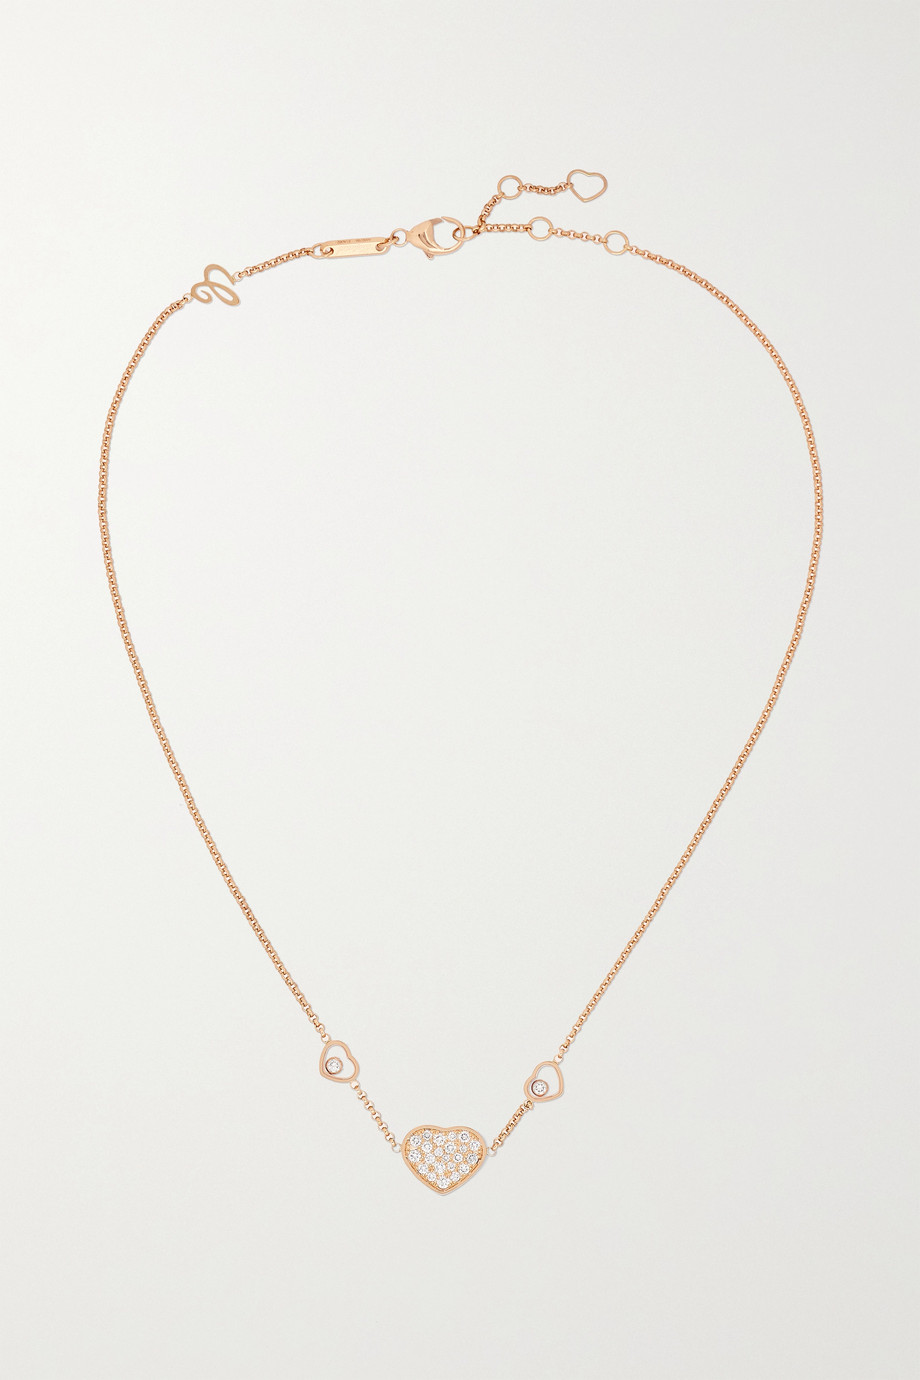 Chopard Collier en or rose 18 carats et diamants Happy Hearts